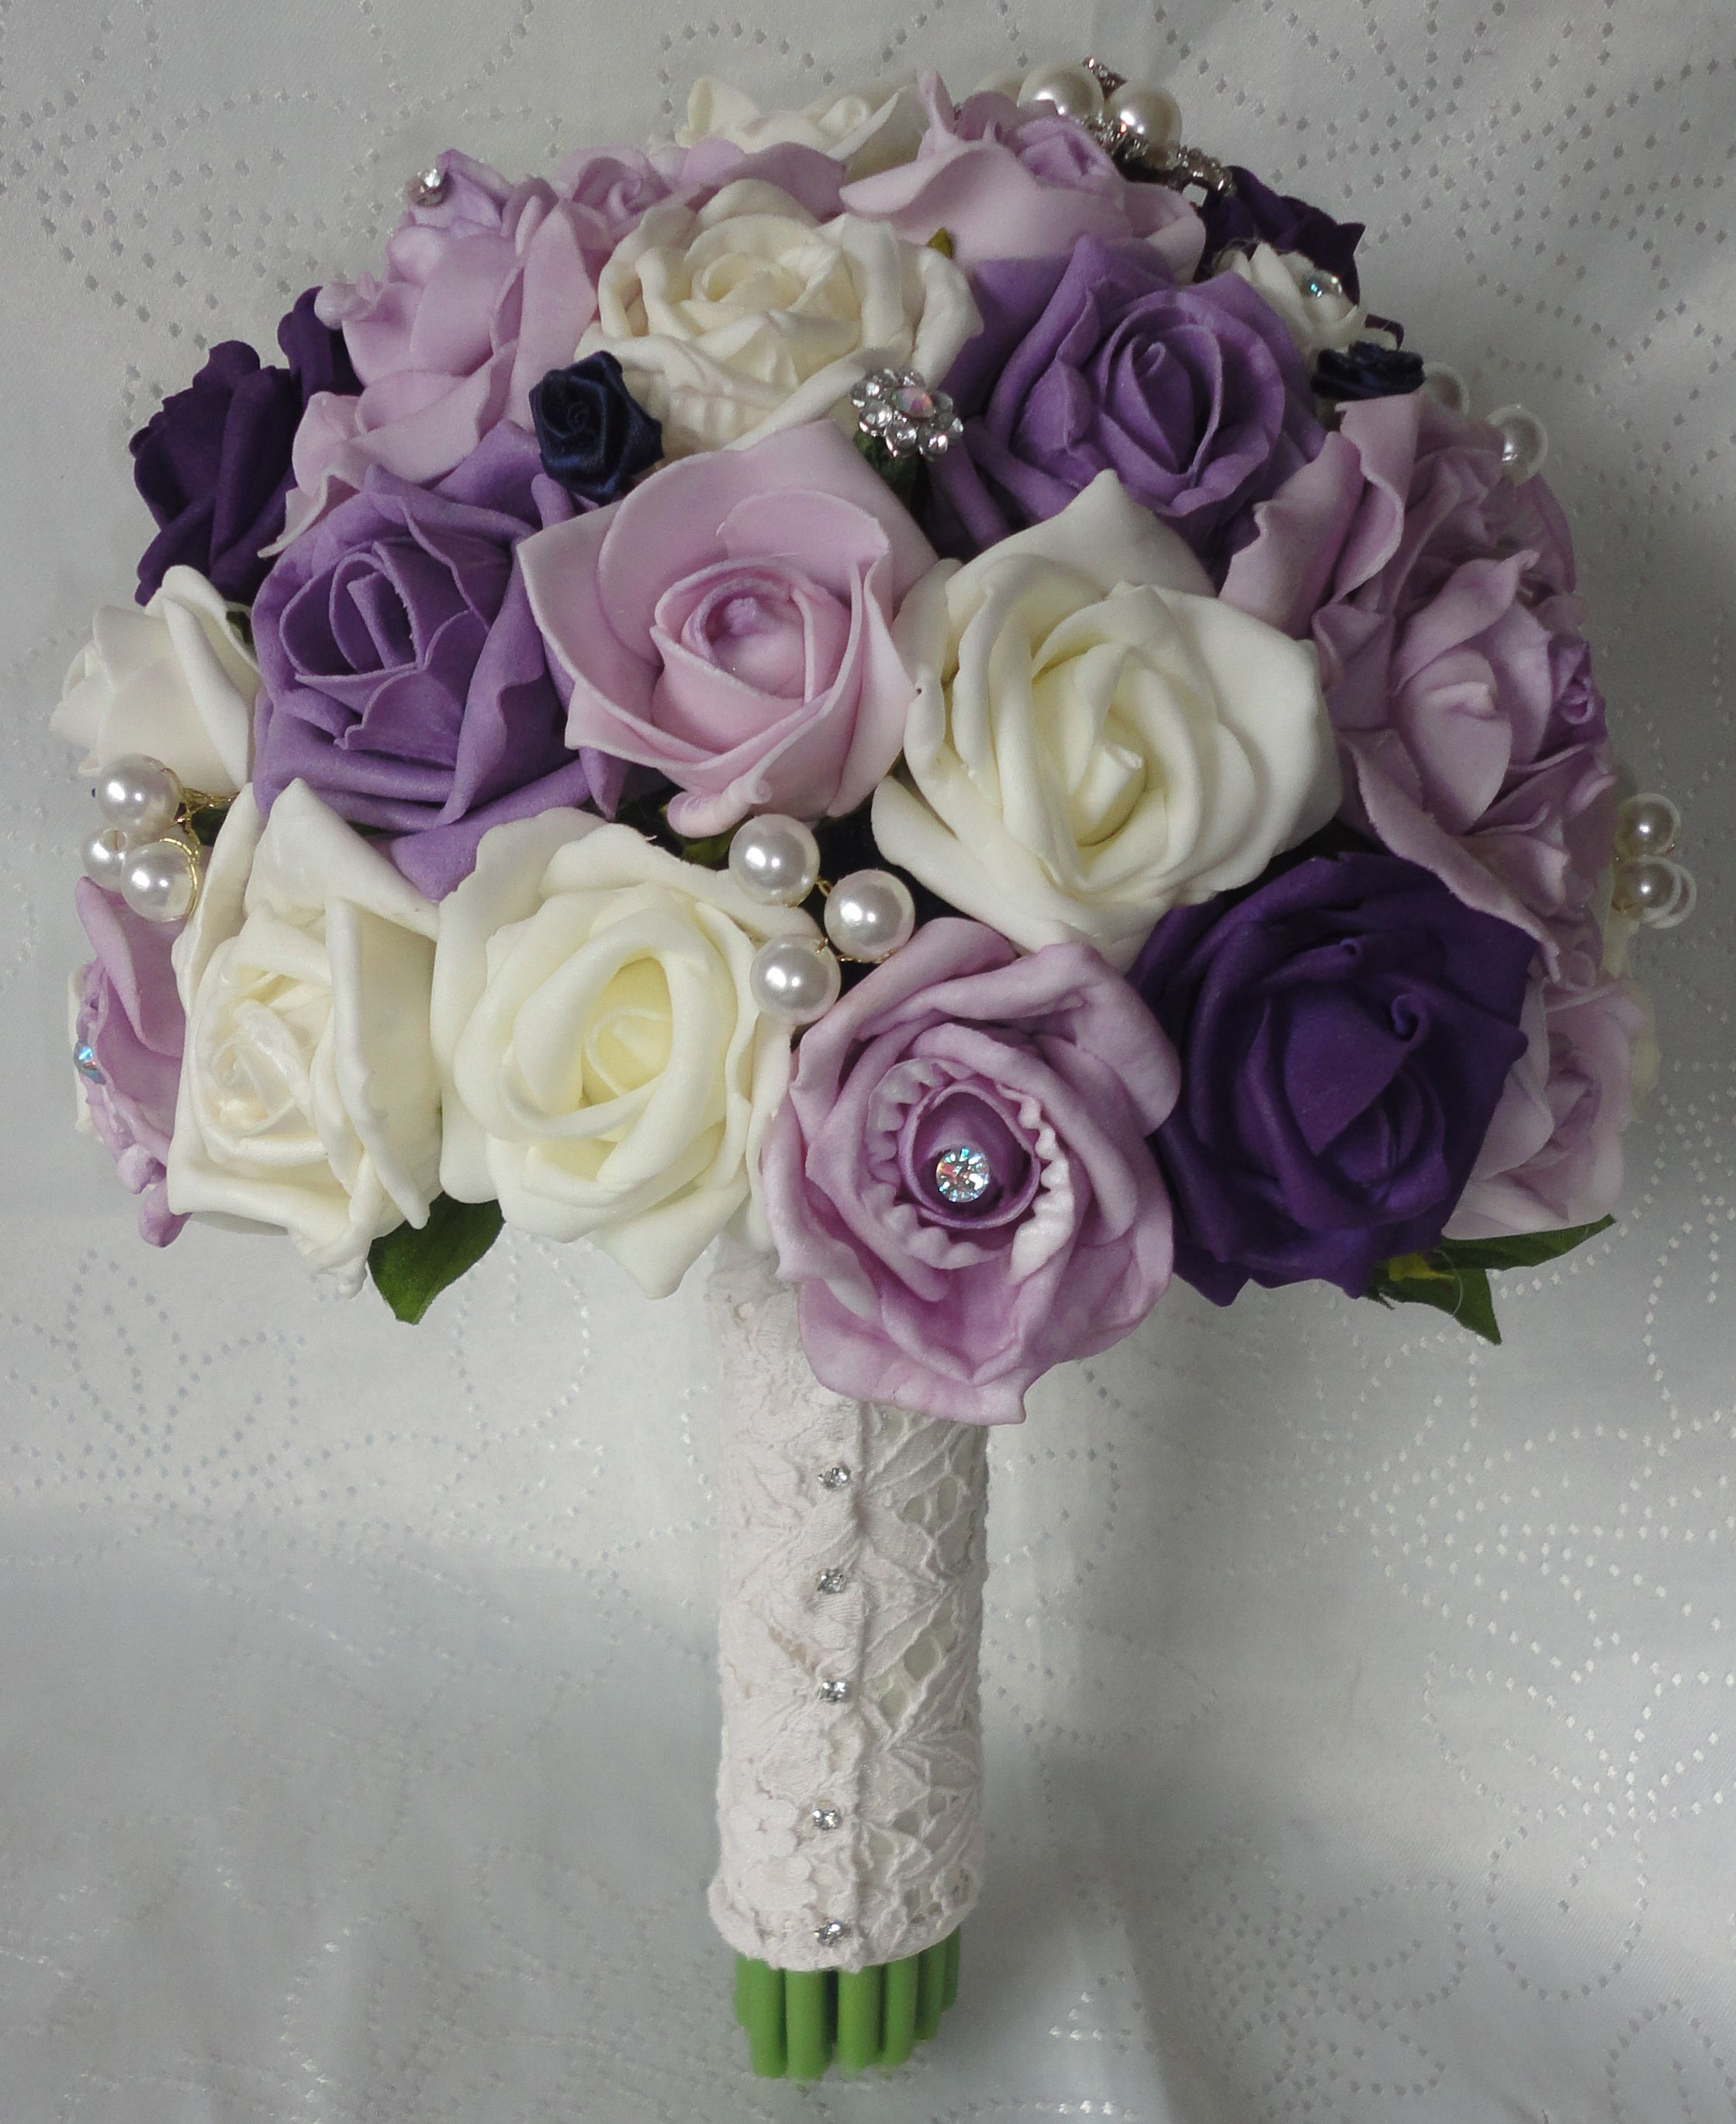 Plum and ivory bridal bouquet wedding bouquet in shades of dusky plum and ivory bridal bouquet wedding bouquet in shades of dusky aubergine lilacs izmirmasajfo